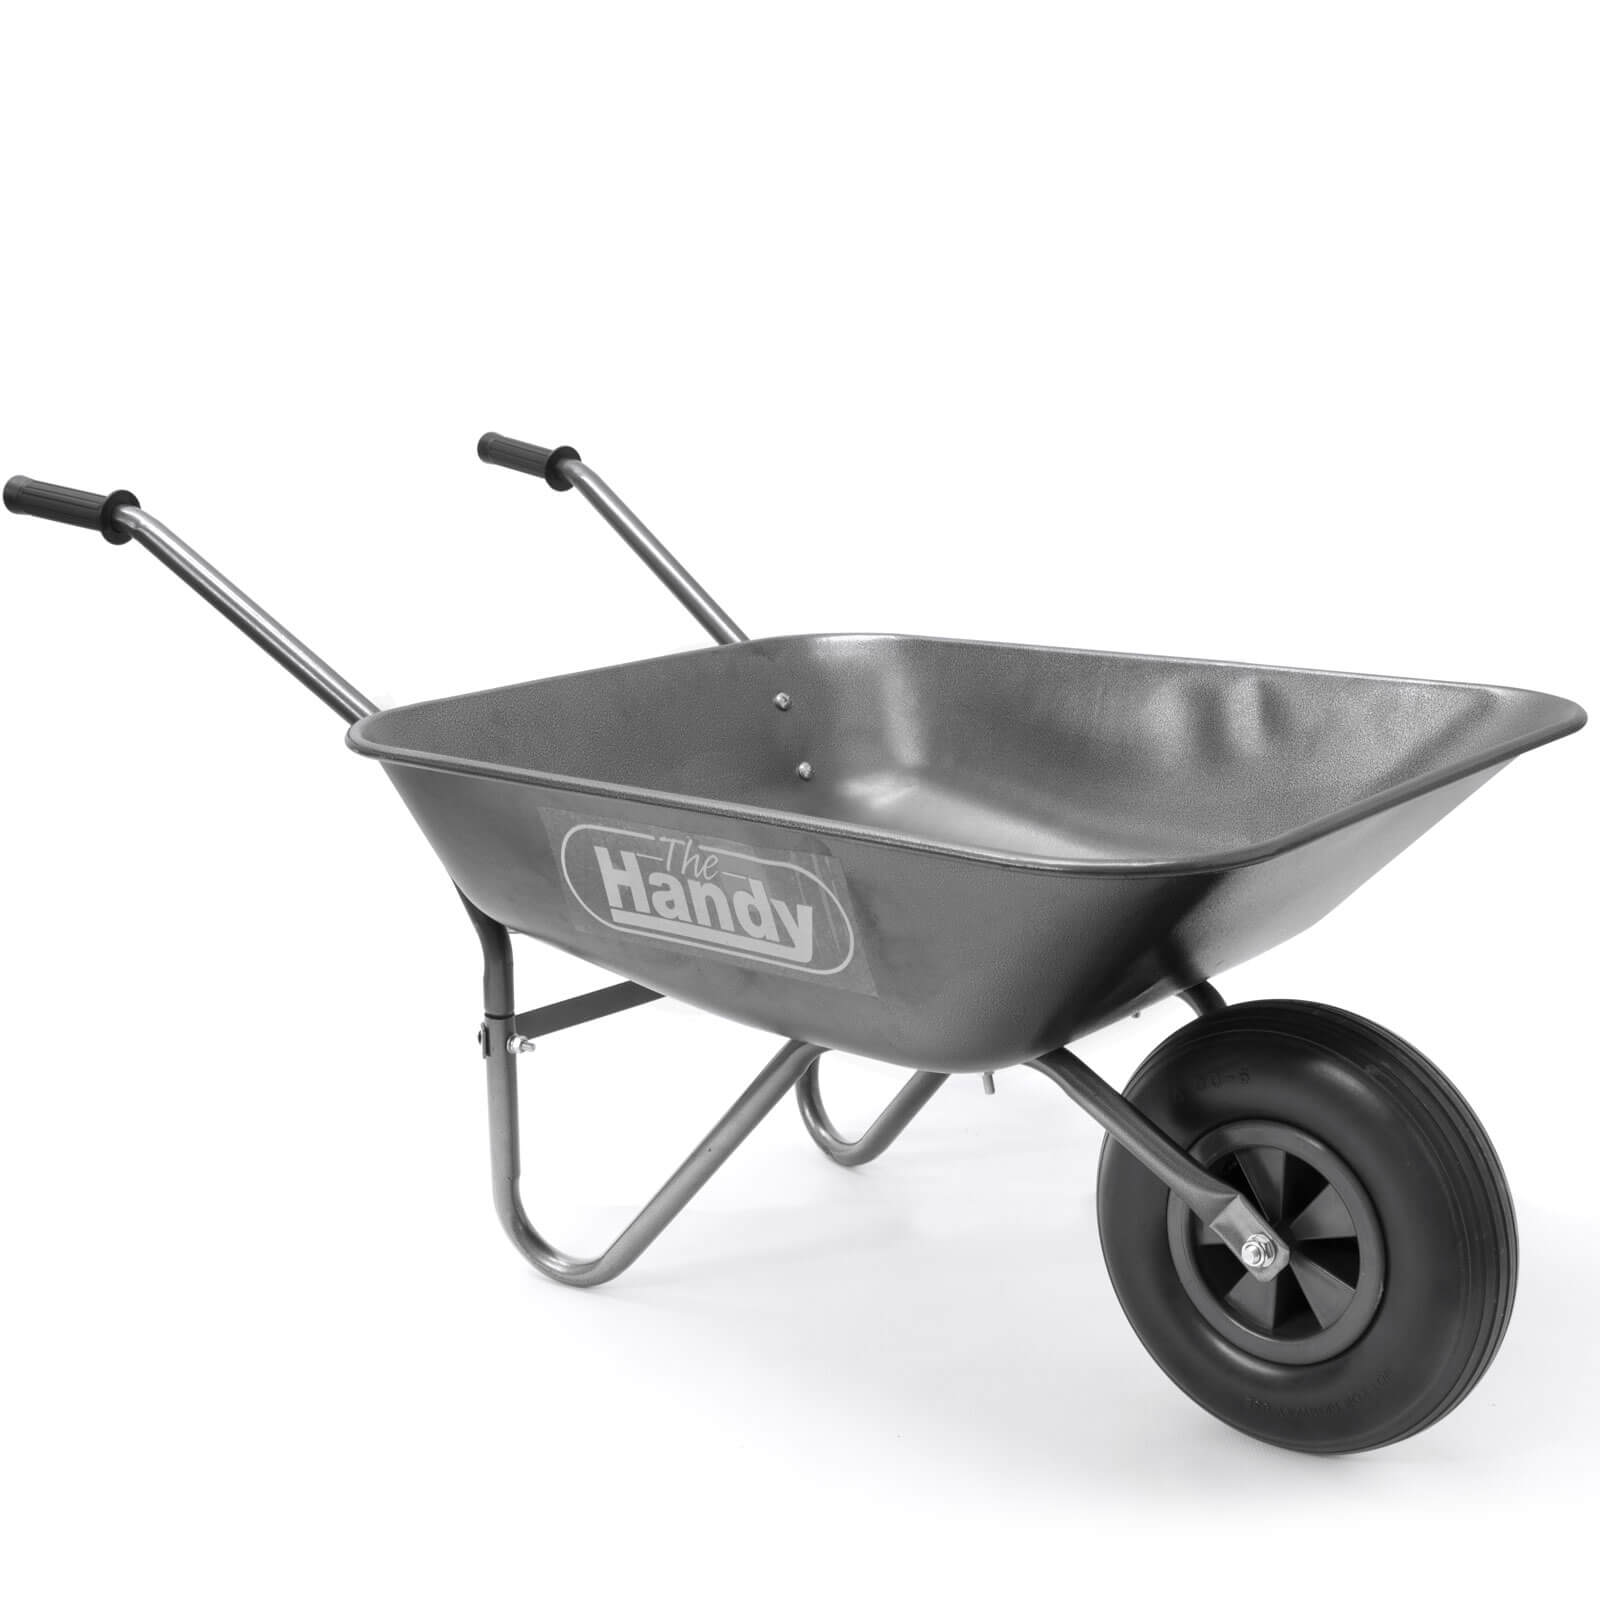 Handy Wheelbarrow Capacity 65 Litre